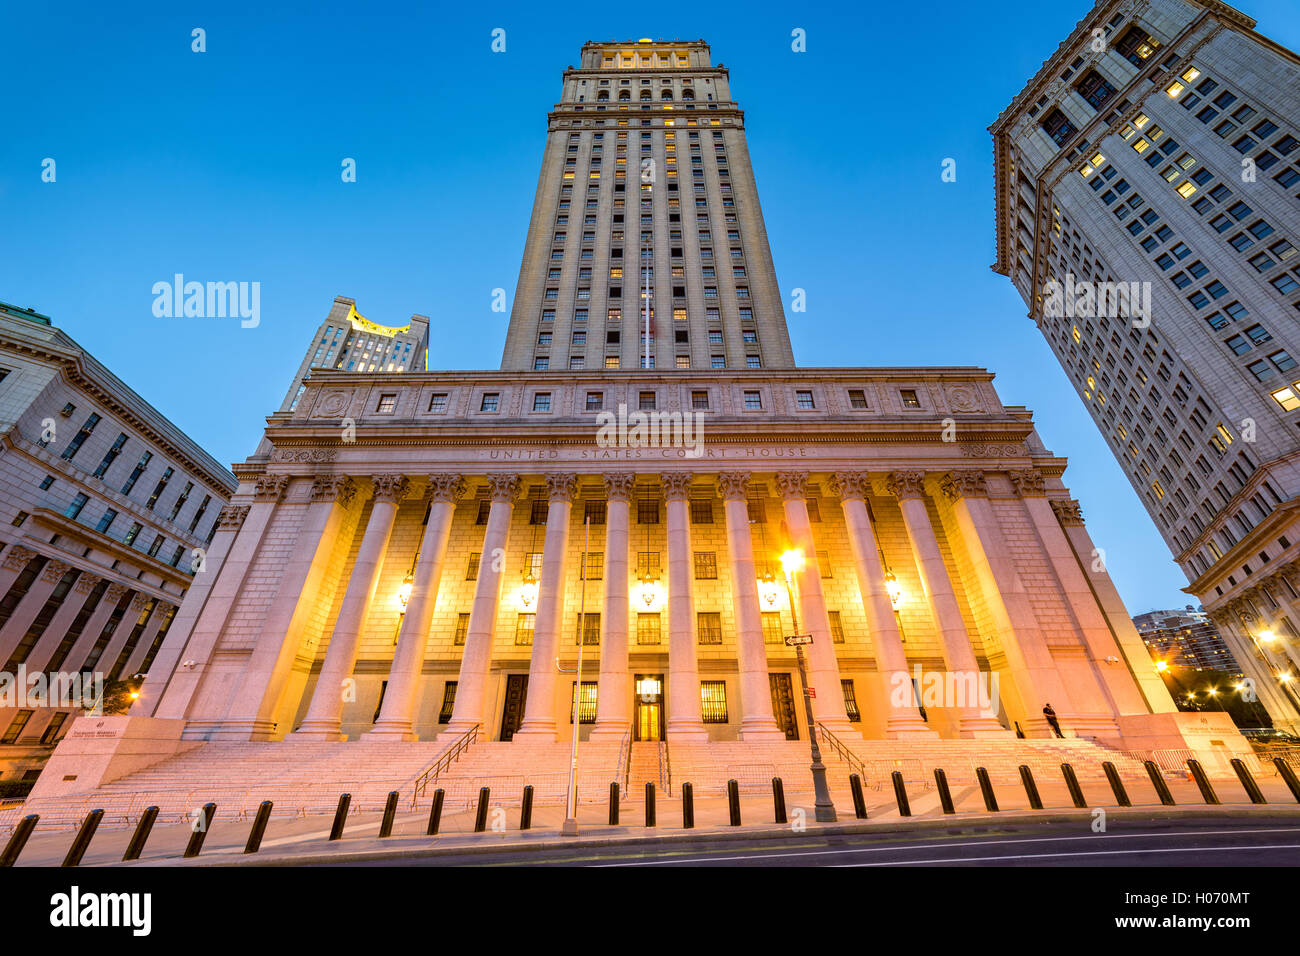 The public building of United States Courthouse located in the Civic Center neighborhood of Lower Manhattan in New - Stock Image